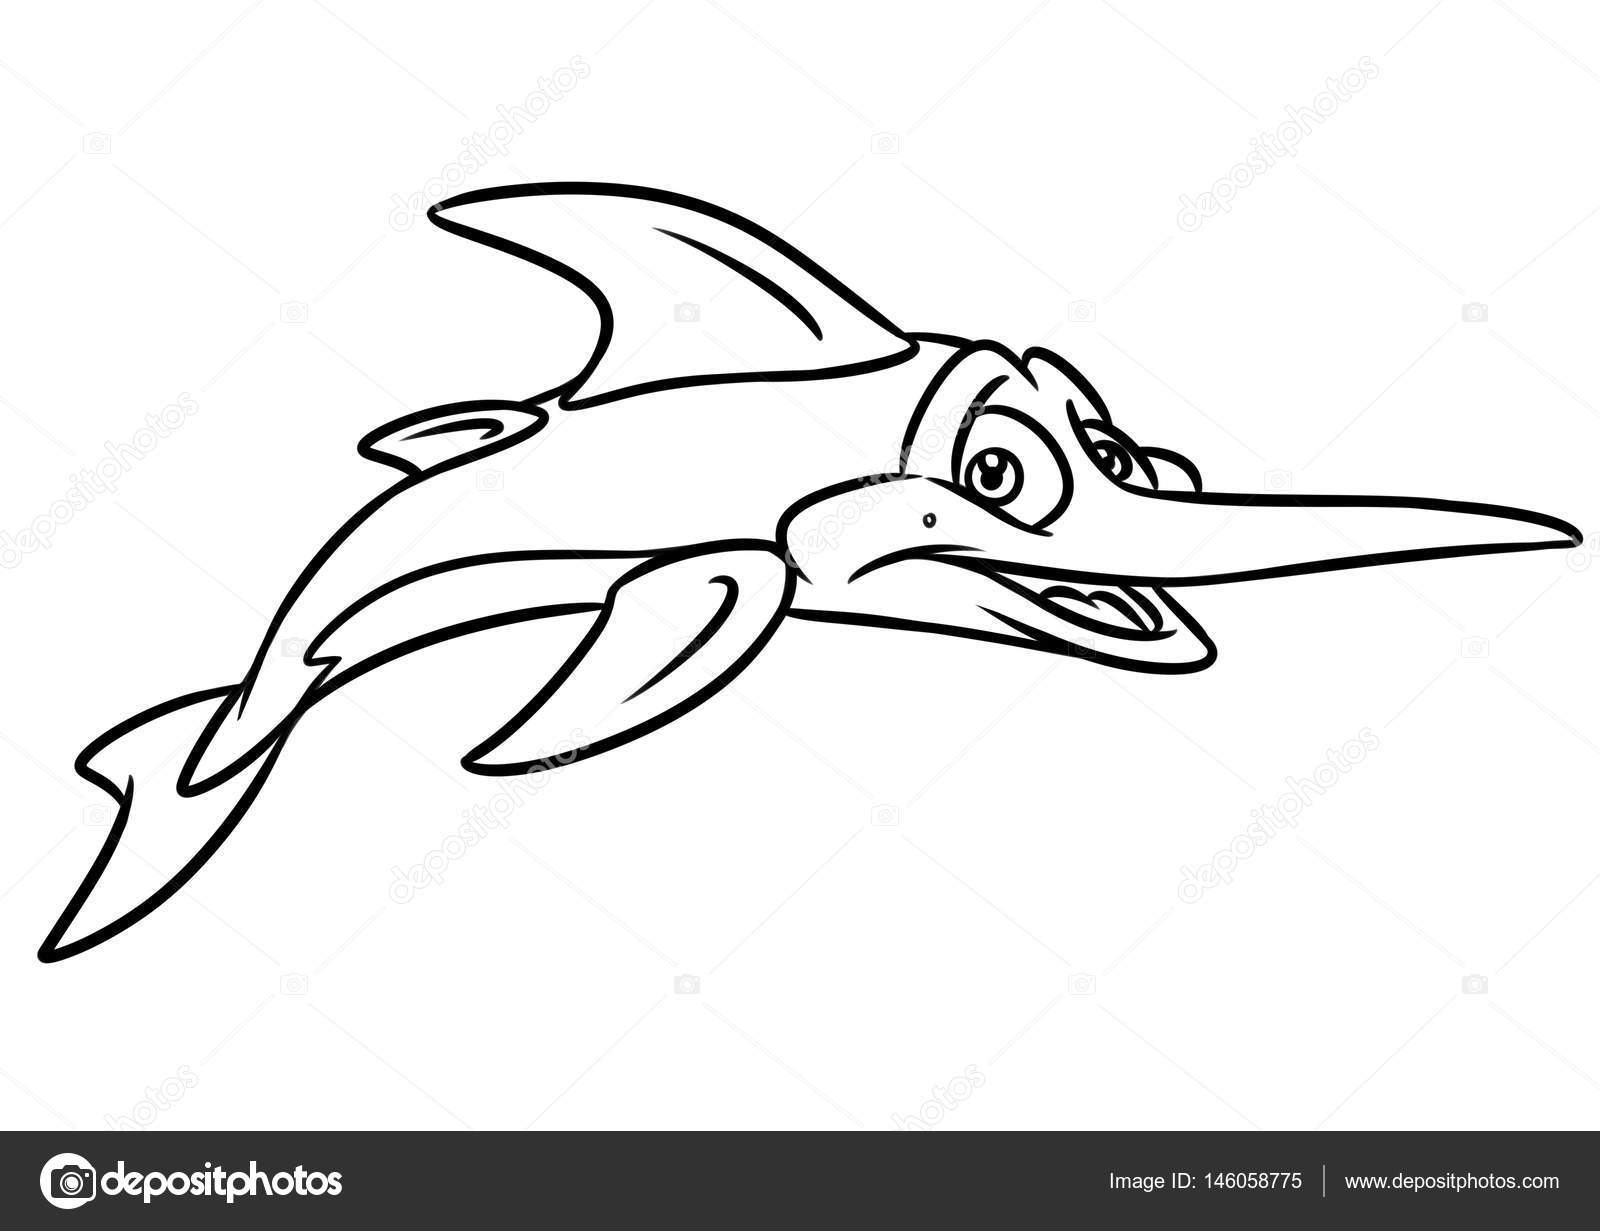 Swordfish Coloring Page Cartoon Illustrations Stock Photo 146058775